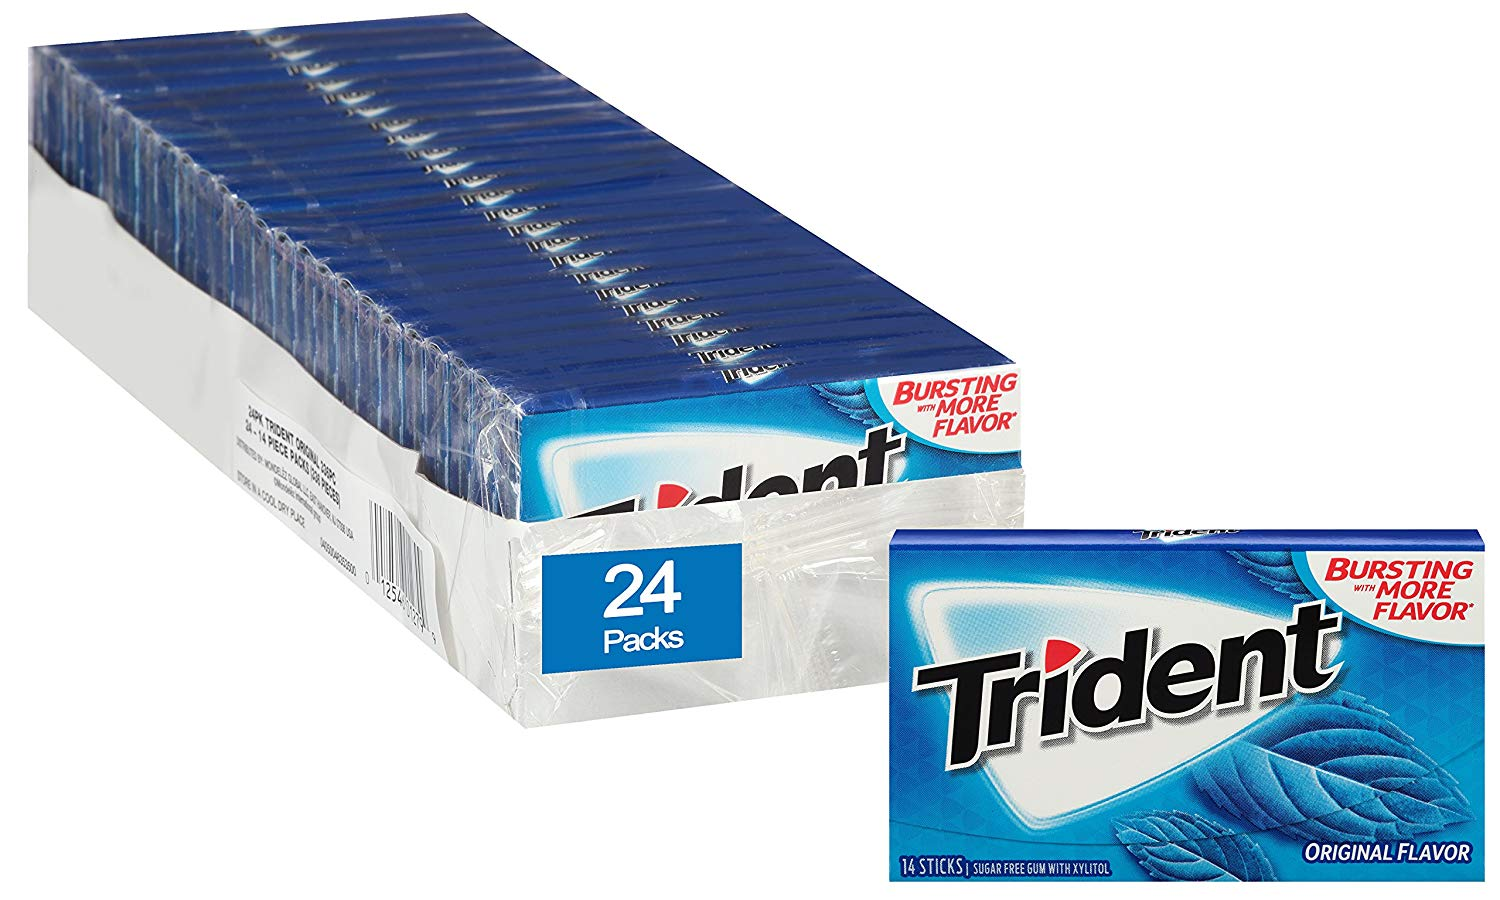 24-Pack of 14-Piece Trident Sugar Free Gum (Original) $12.42 5% or $10.75 15% & MORE AC w/s&s